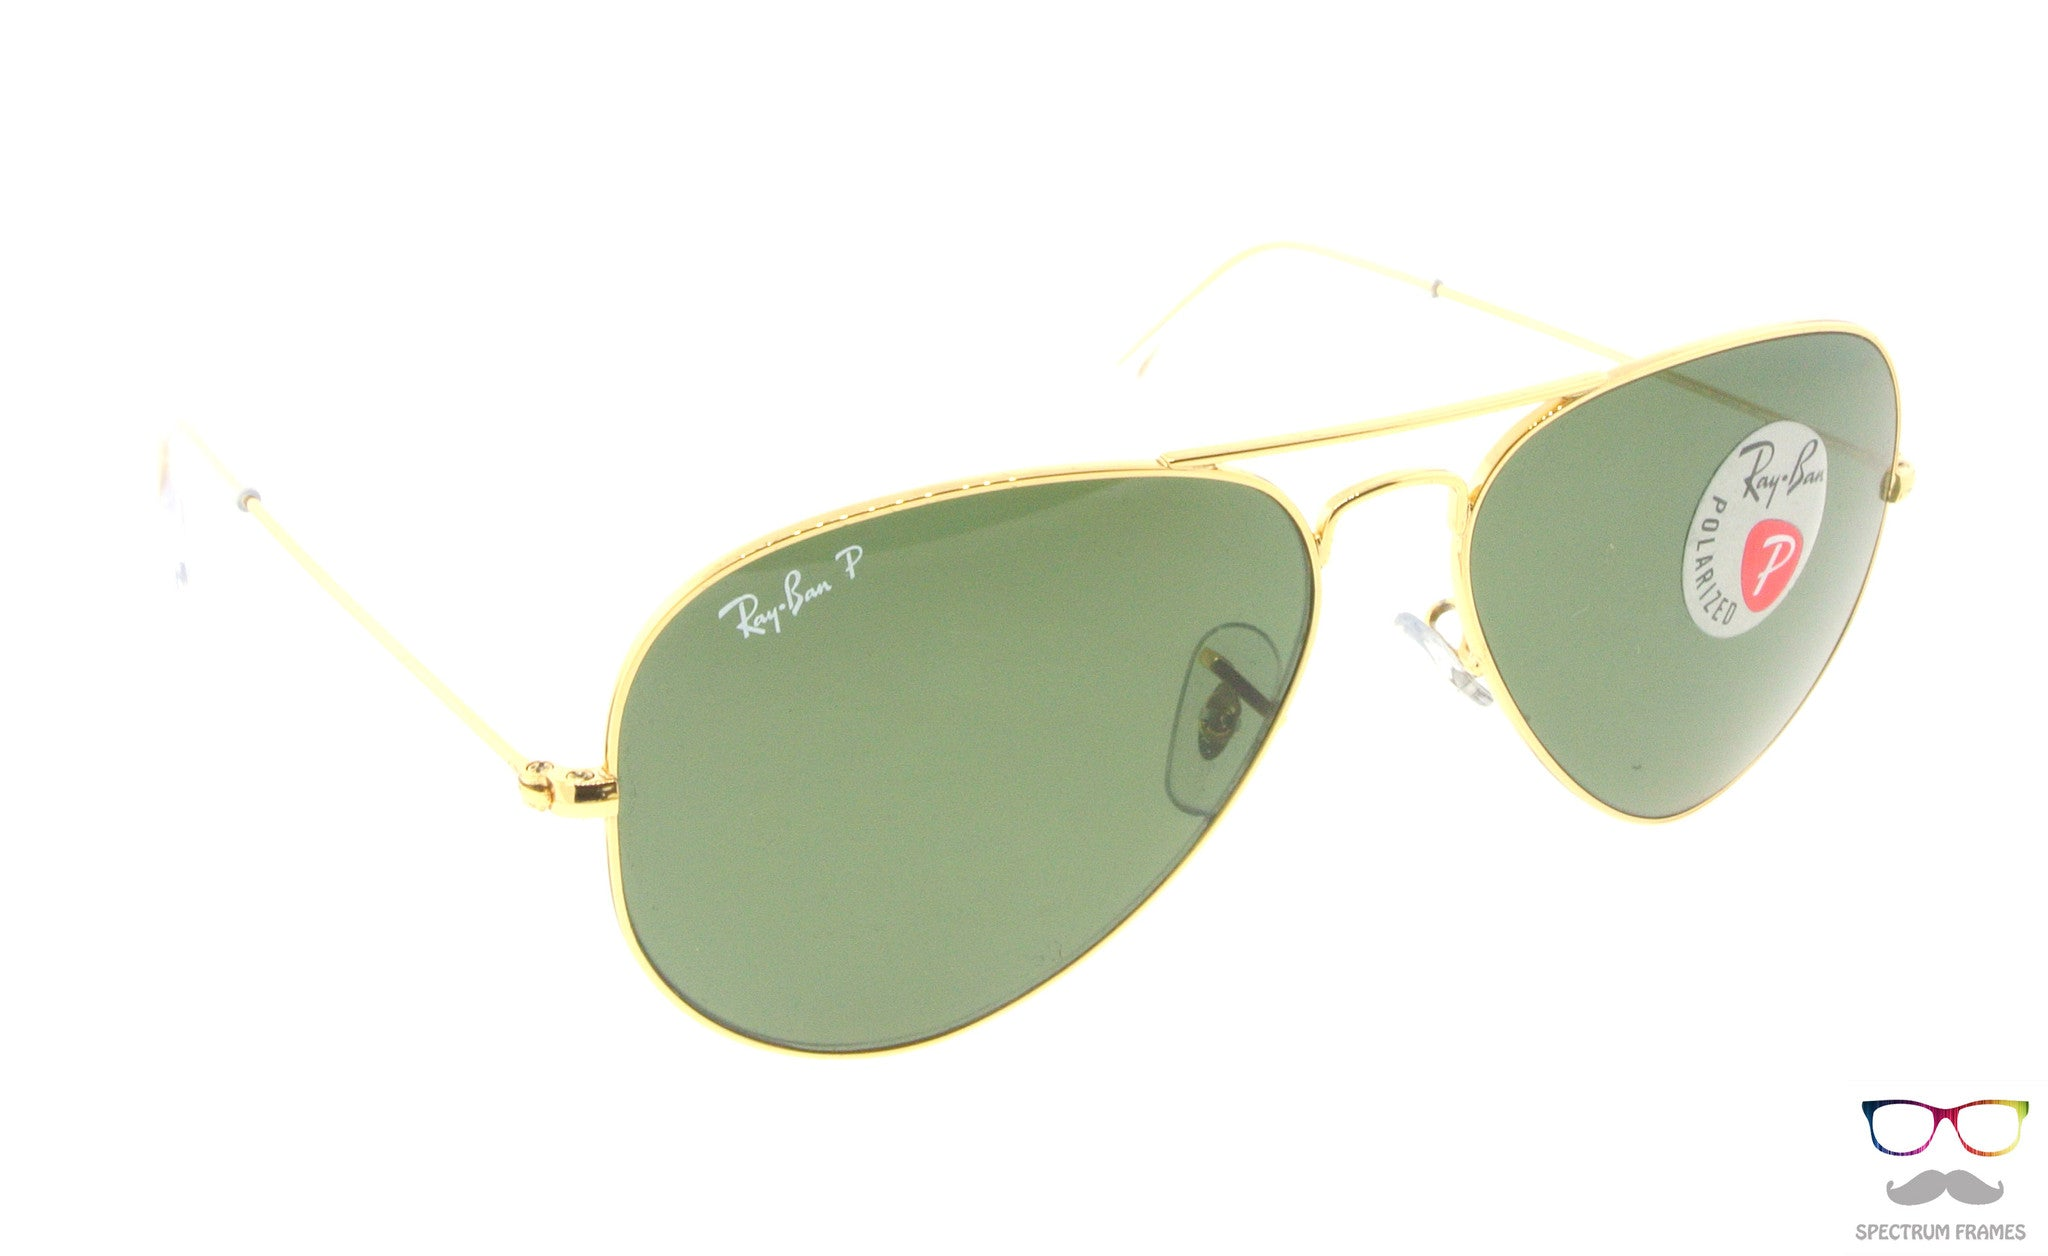 ... Ray Ban Sunglasses RB 3025 001 58 Gold with Green Polarized Lens Size 55  ... 8c18e3b3e1d8